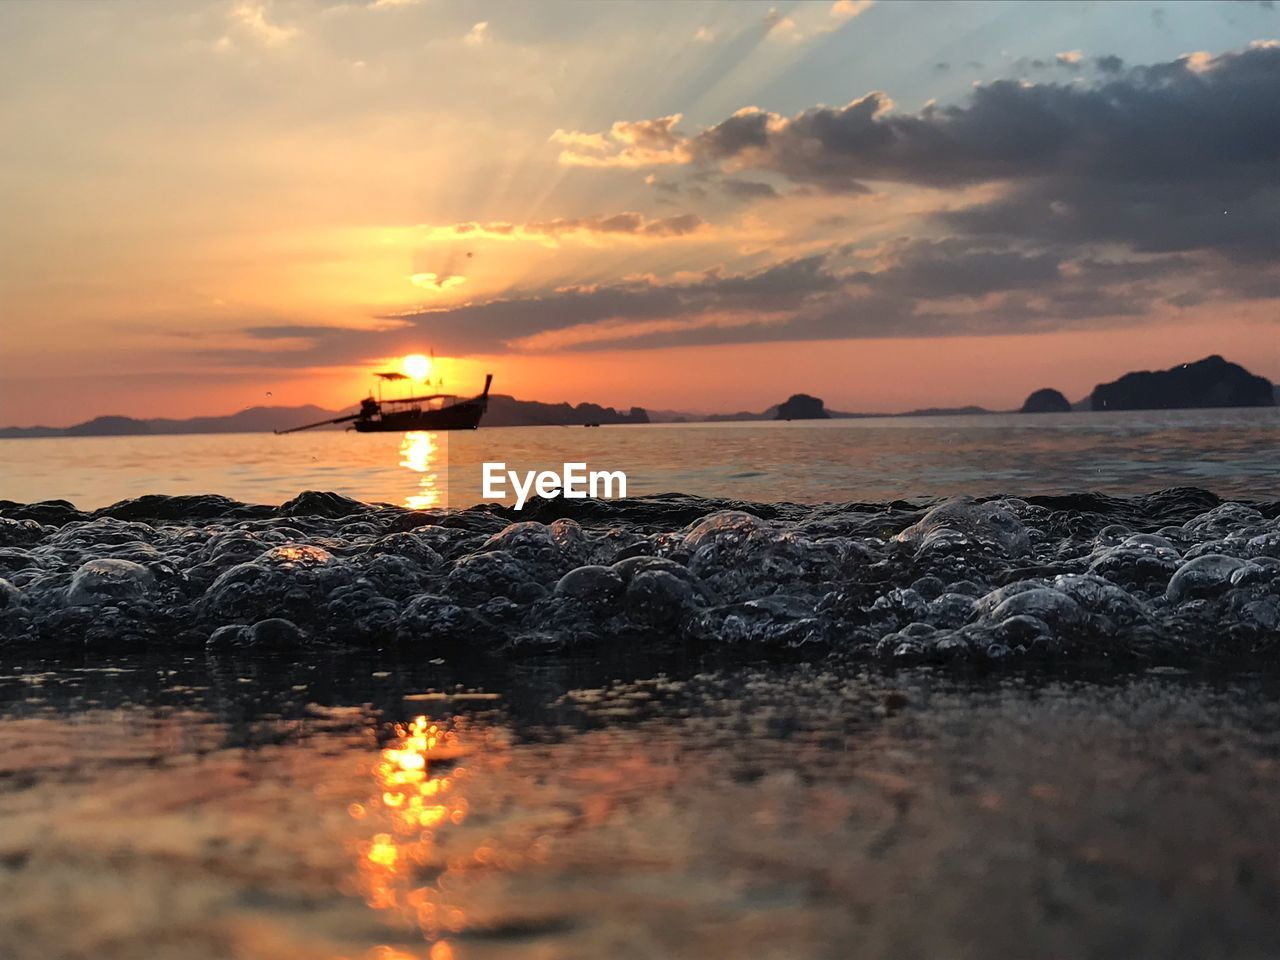 sunset, sky, water, sea, scenics - nature, beauty in nature, orange color, cloud - sky, tranquil scene, tranquility, rock, beach, idyllic, nature, solid, land, horizon over water, no people, rock - object, sun, outdoors